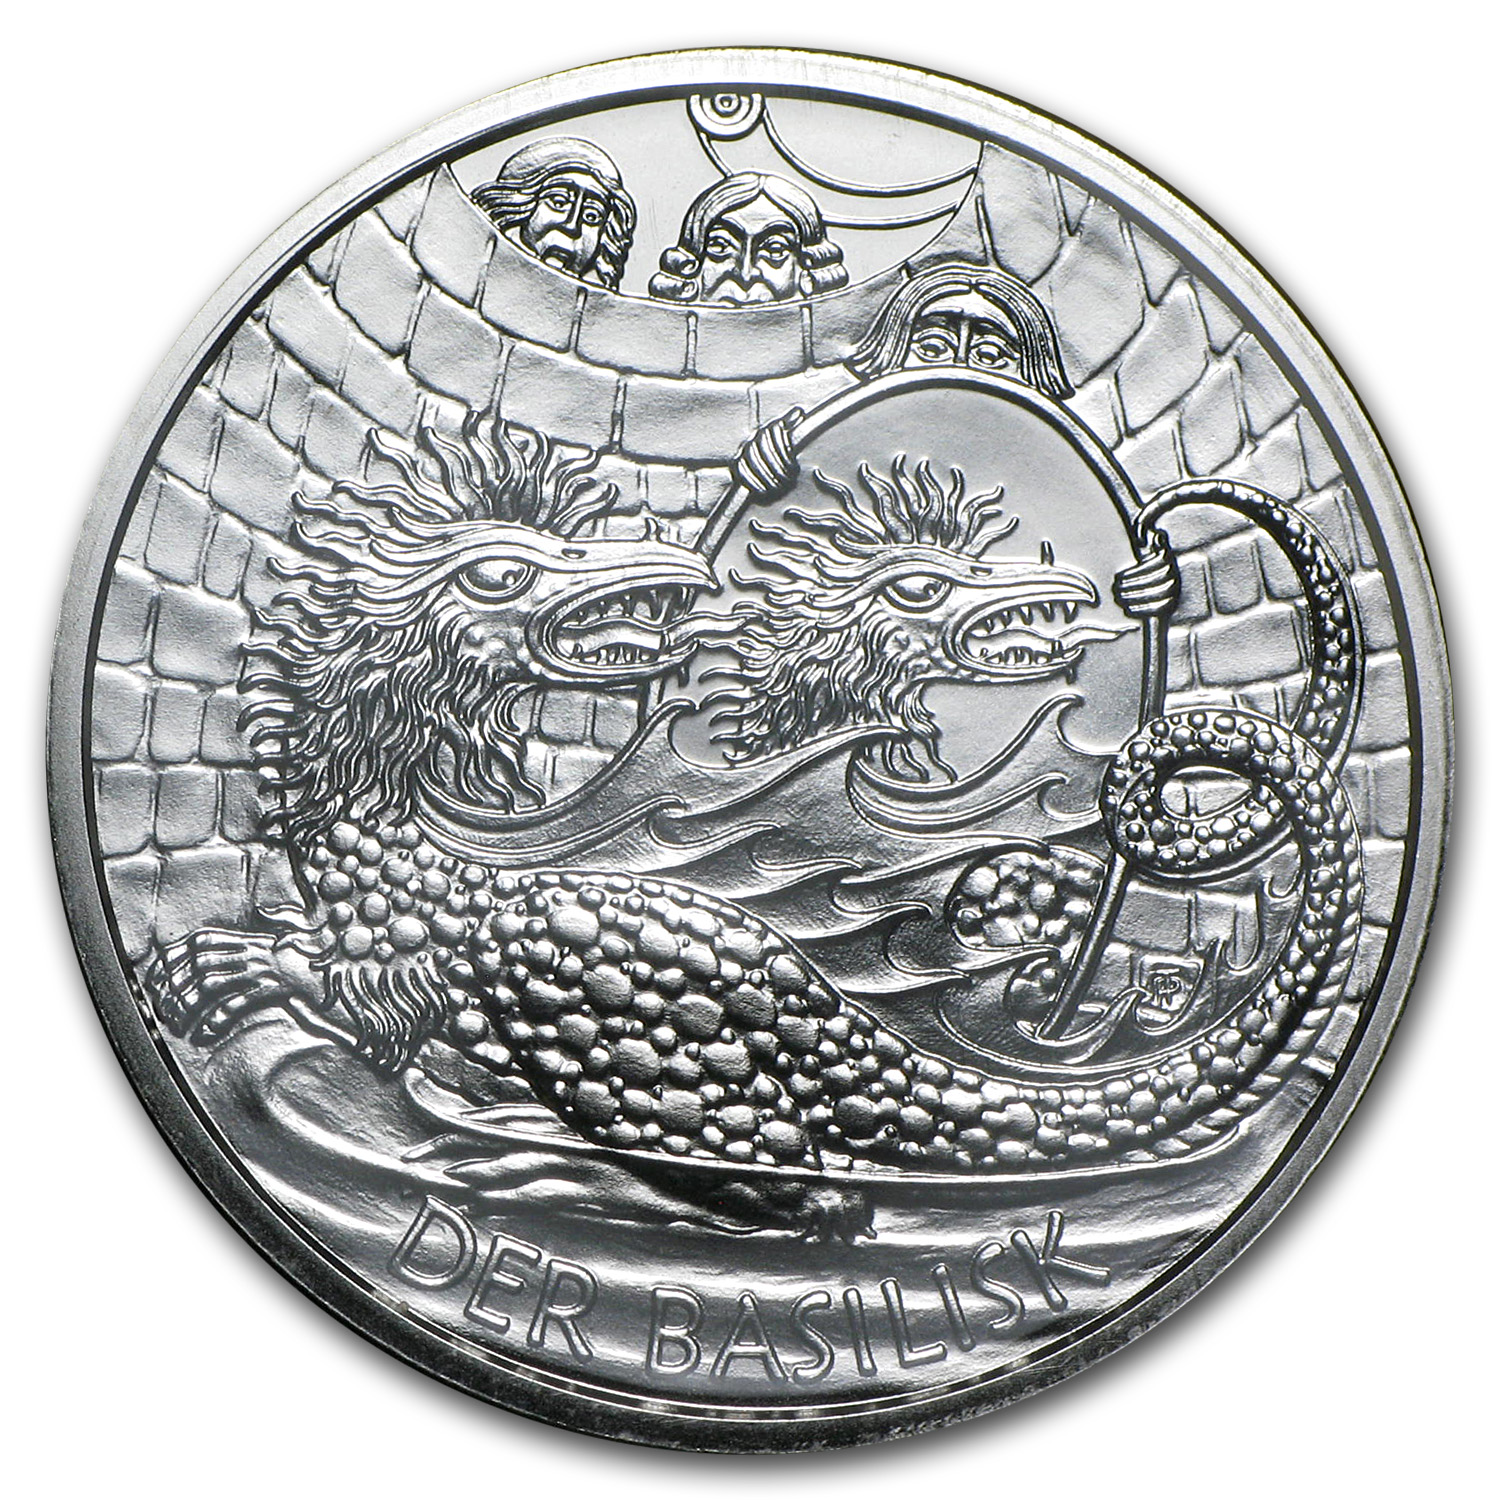 2009 The Basilisk of Vienna 10 Euro Silver Coin asw 0.4758